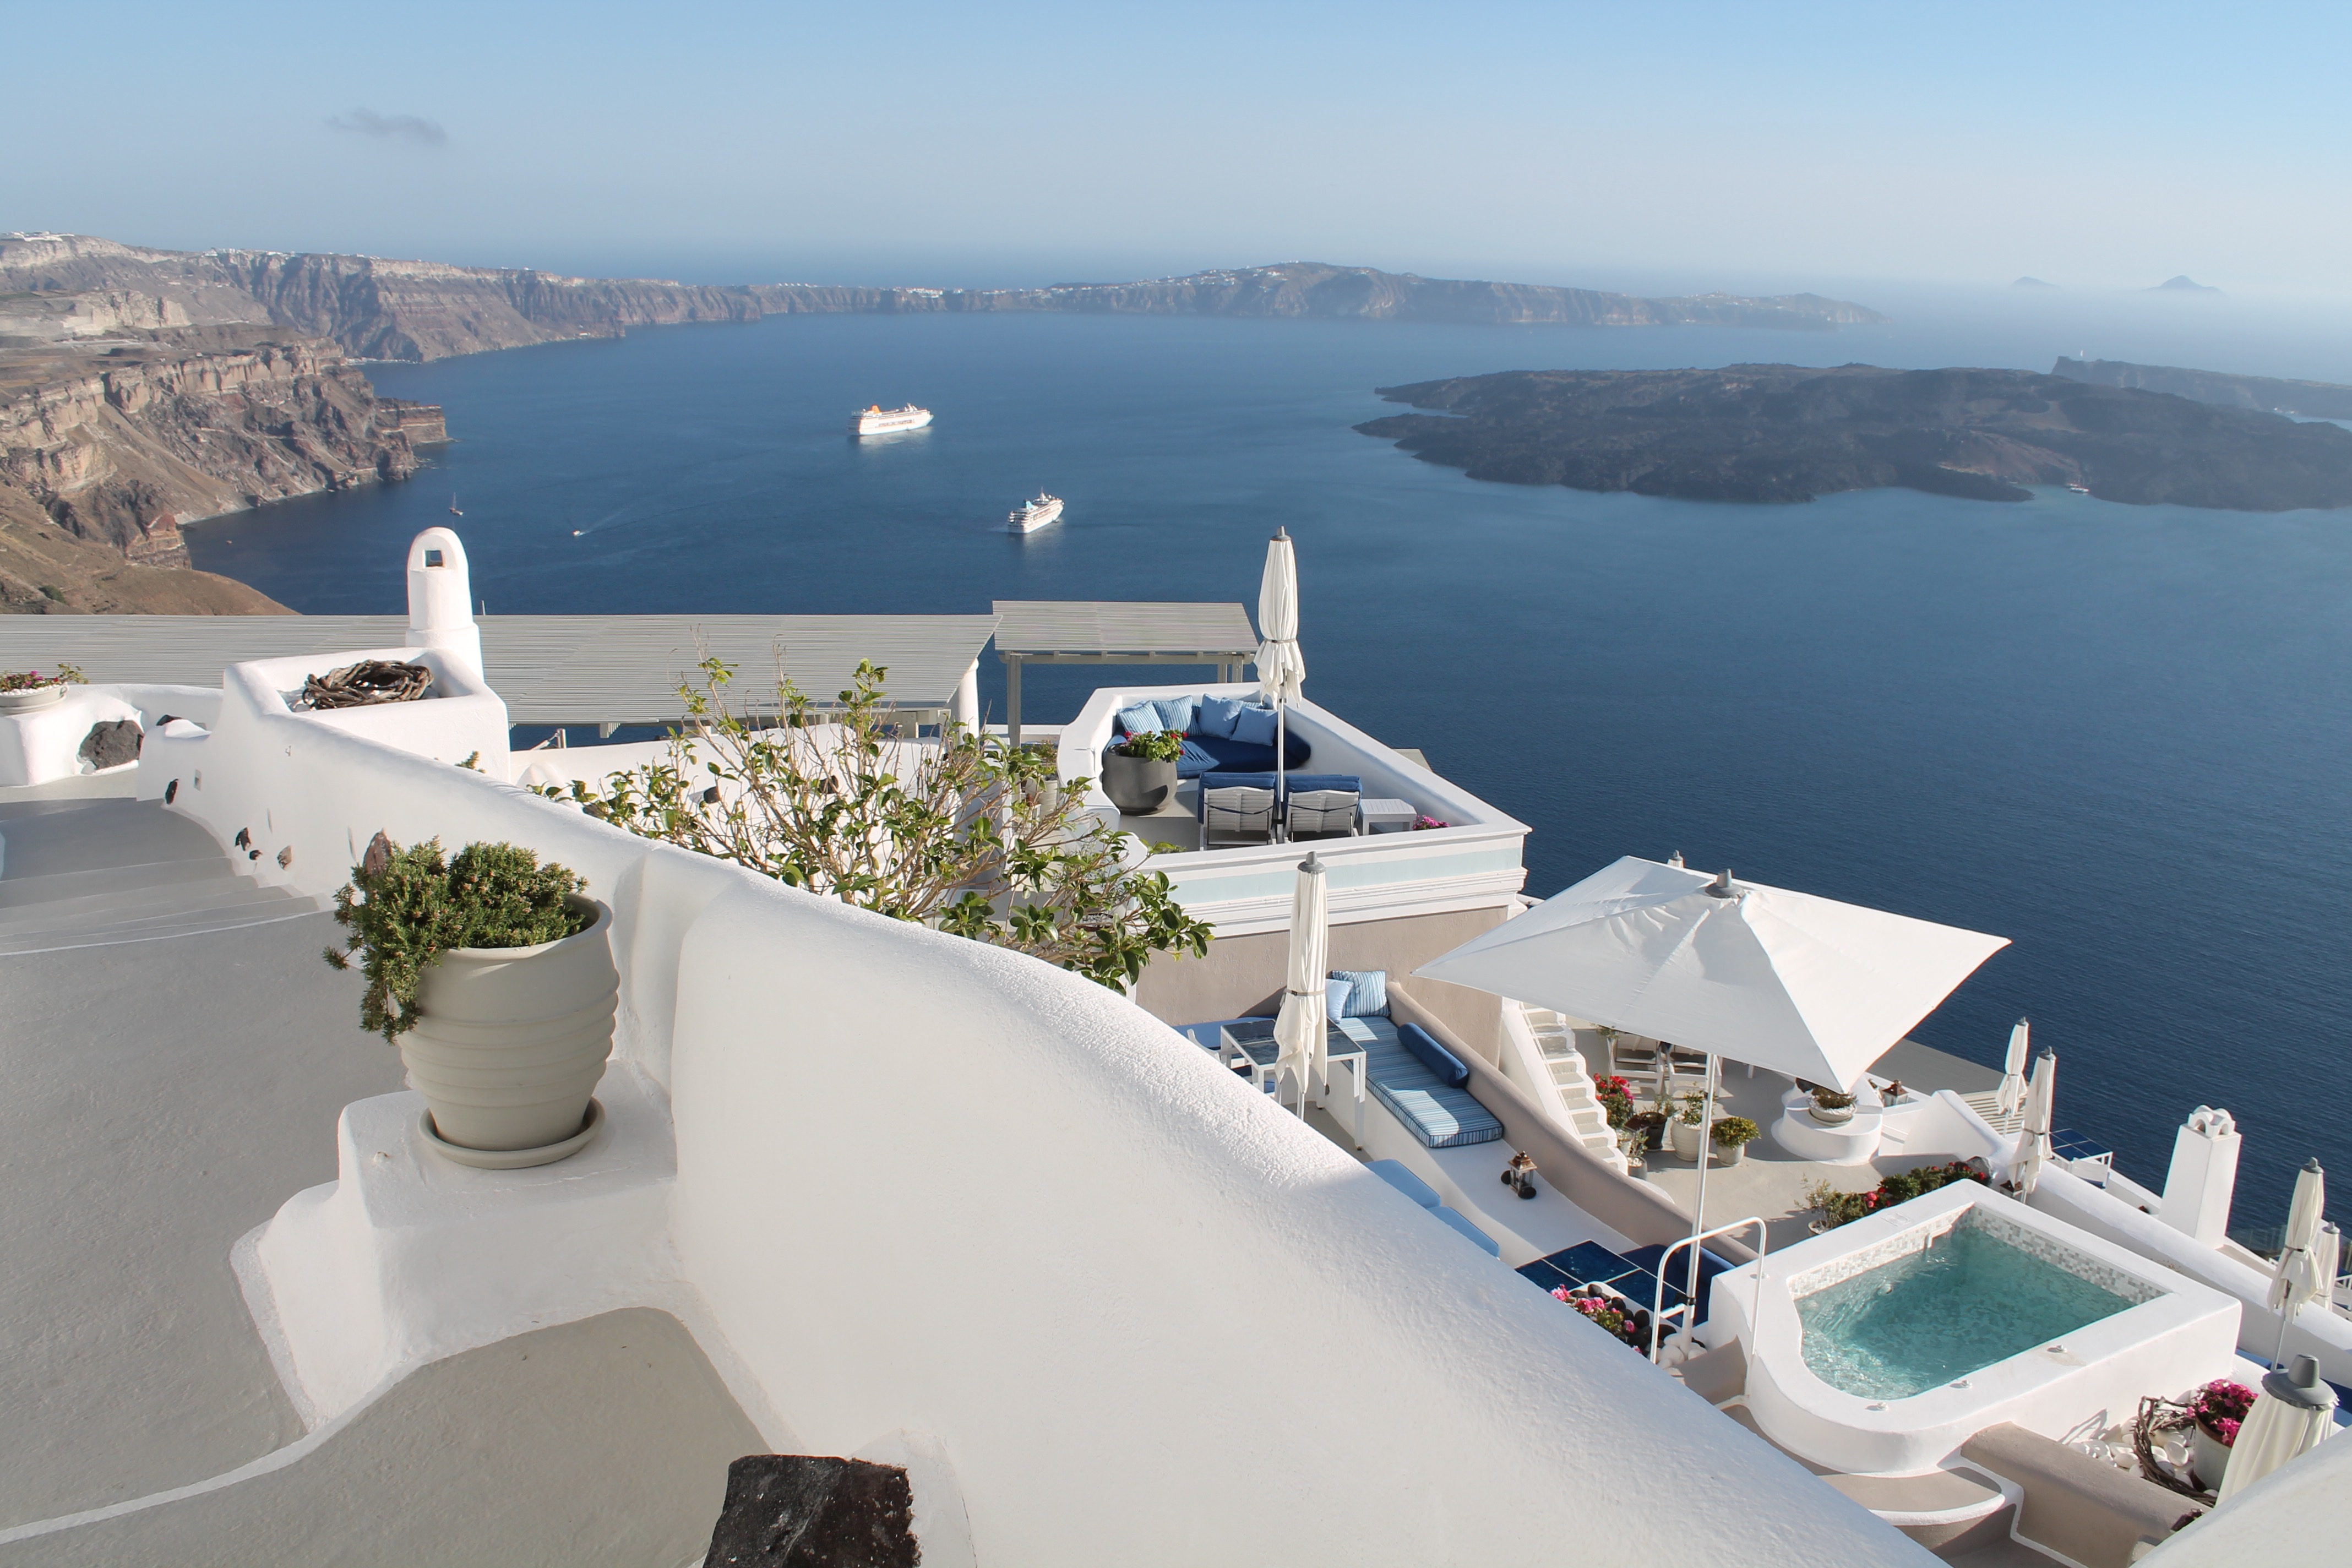 I Visit The Iconic Santorini Boutique Cave Hotel For An Official Review And I Am Blown Away!